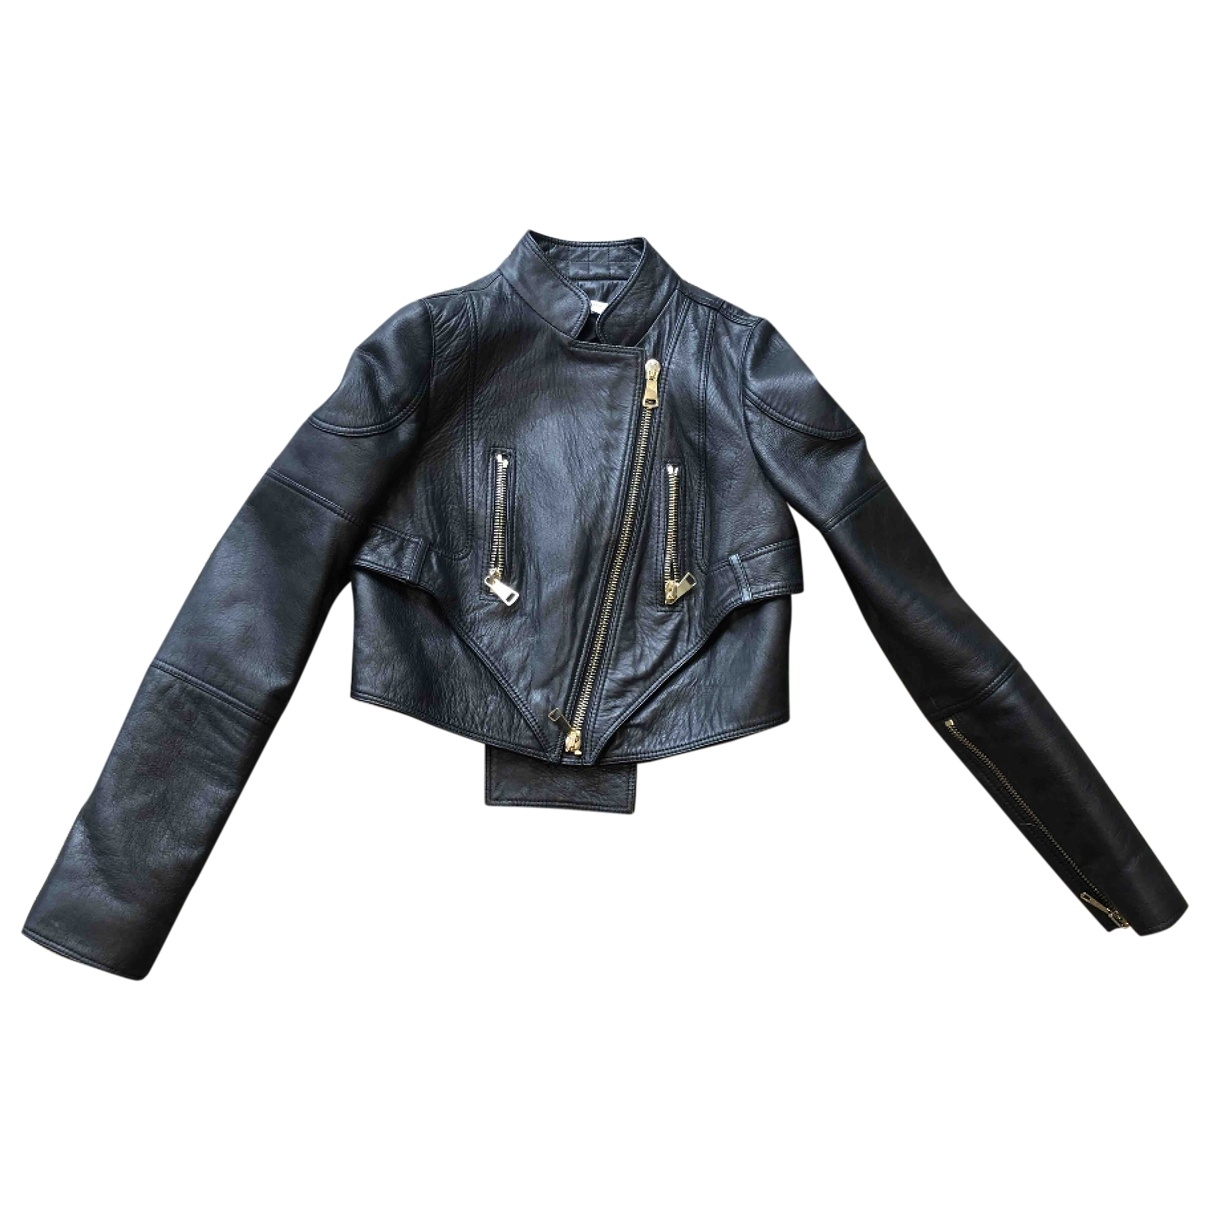 Givenchy \N Black Leather jacket for Women 36 FR